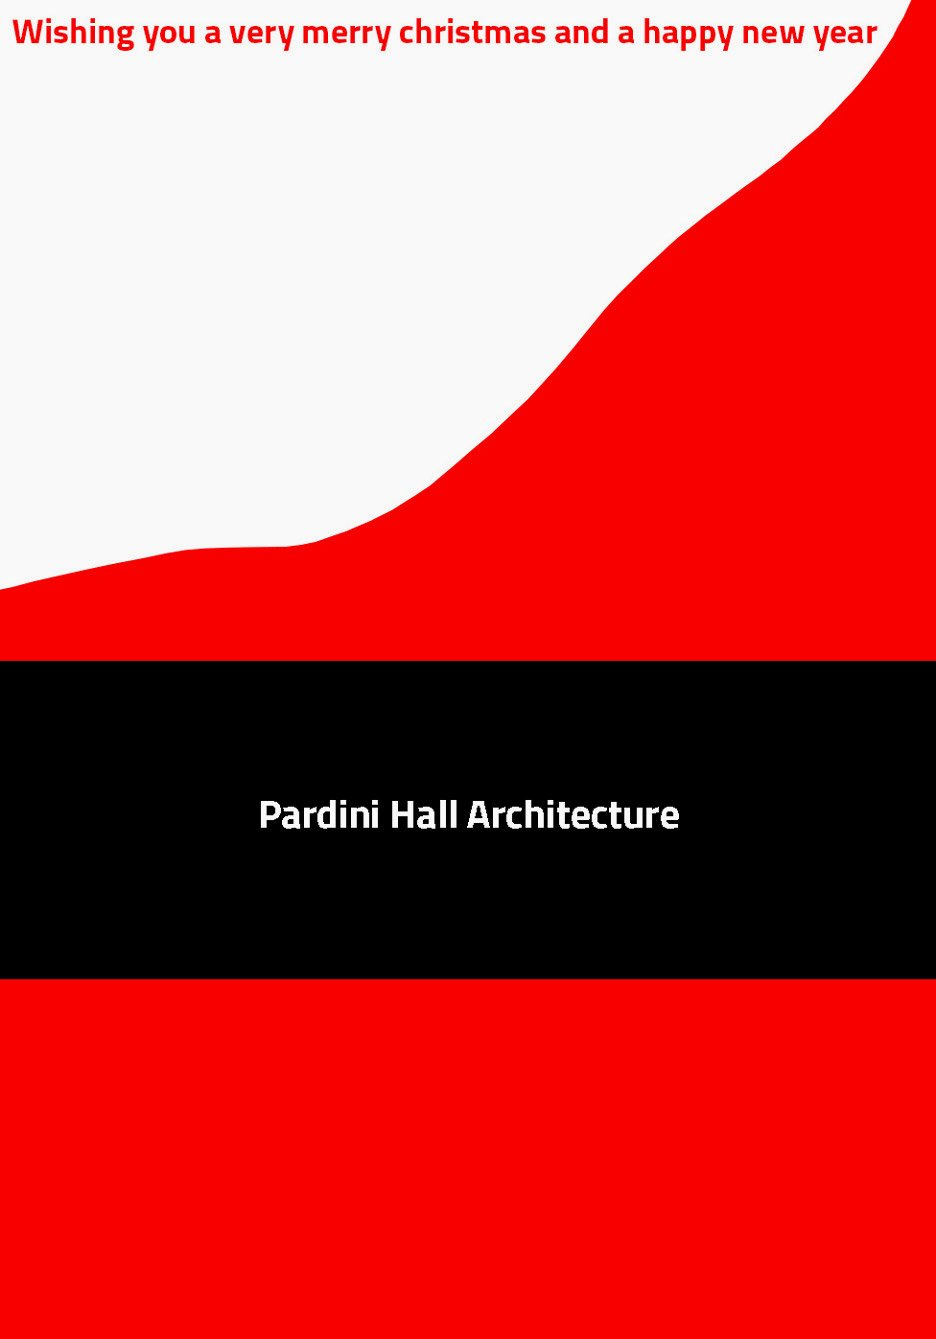 Christmas card by Pardini Hall Architecture